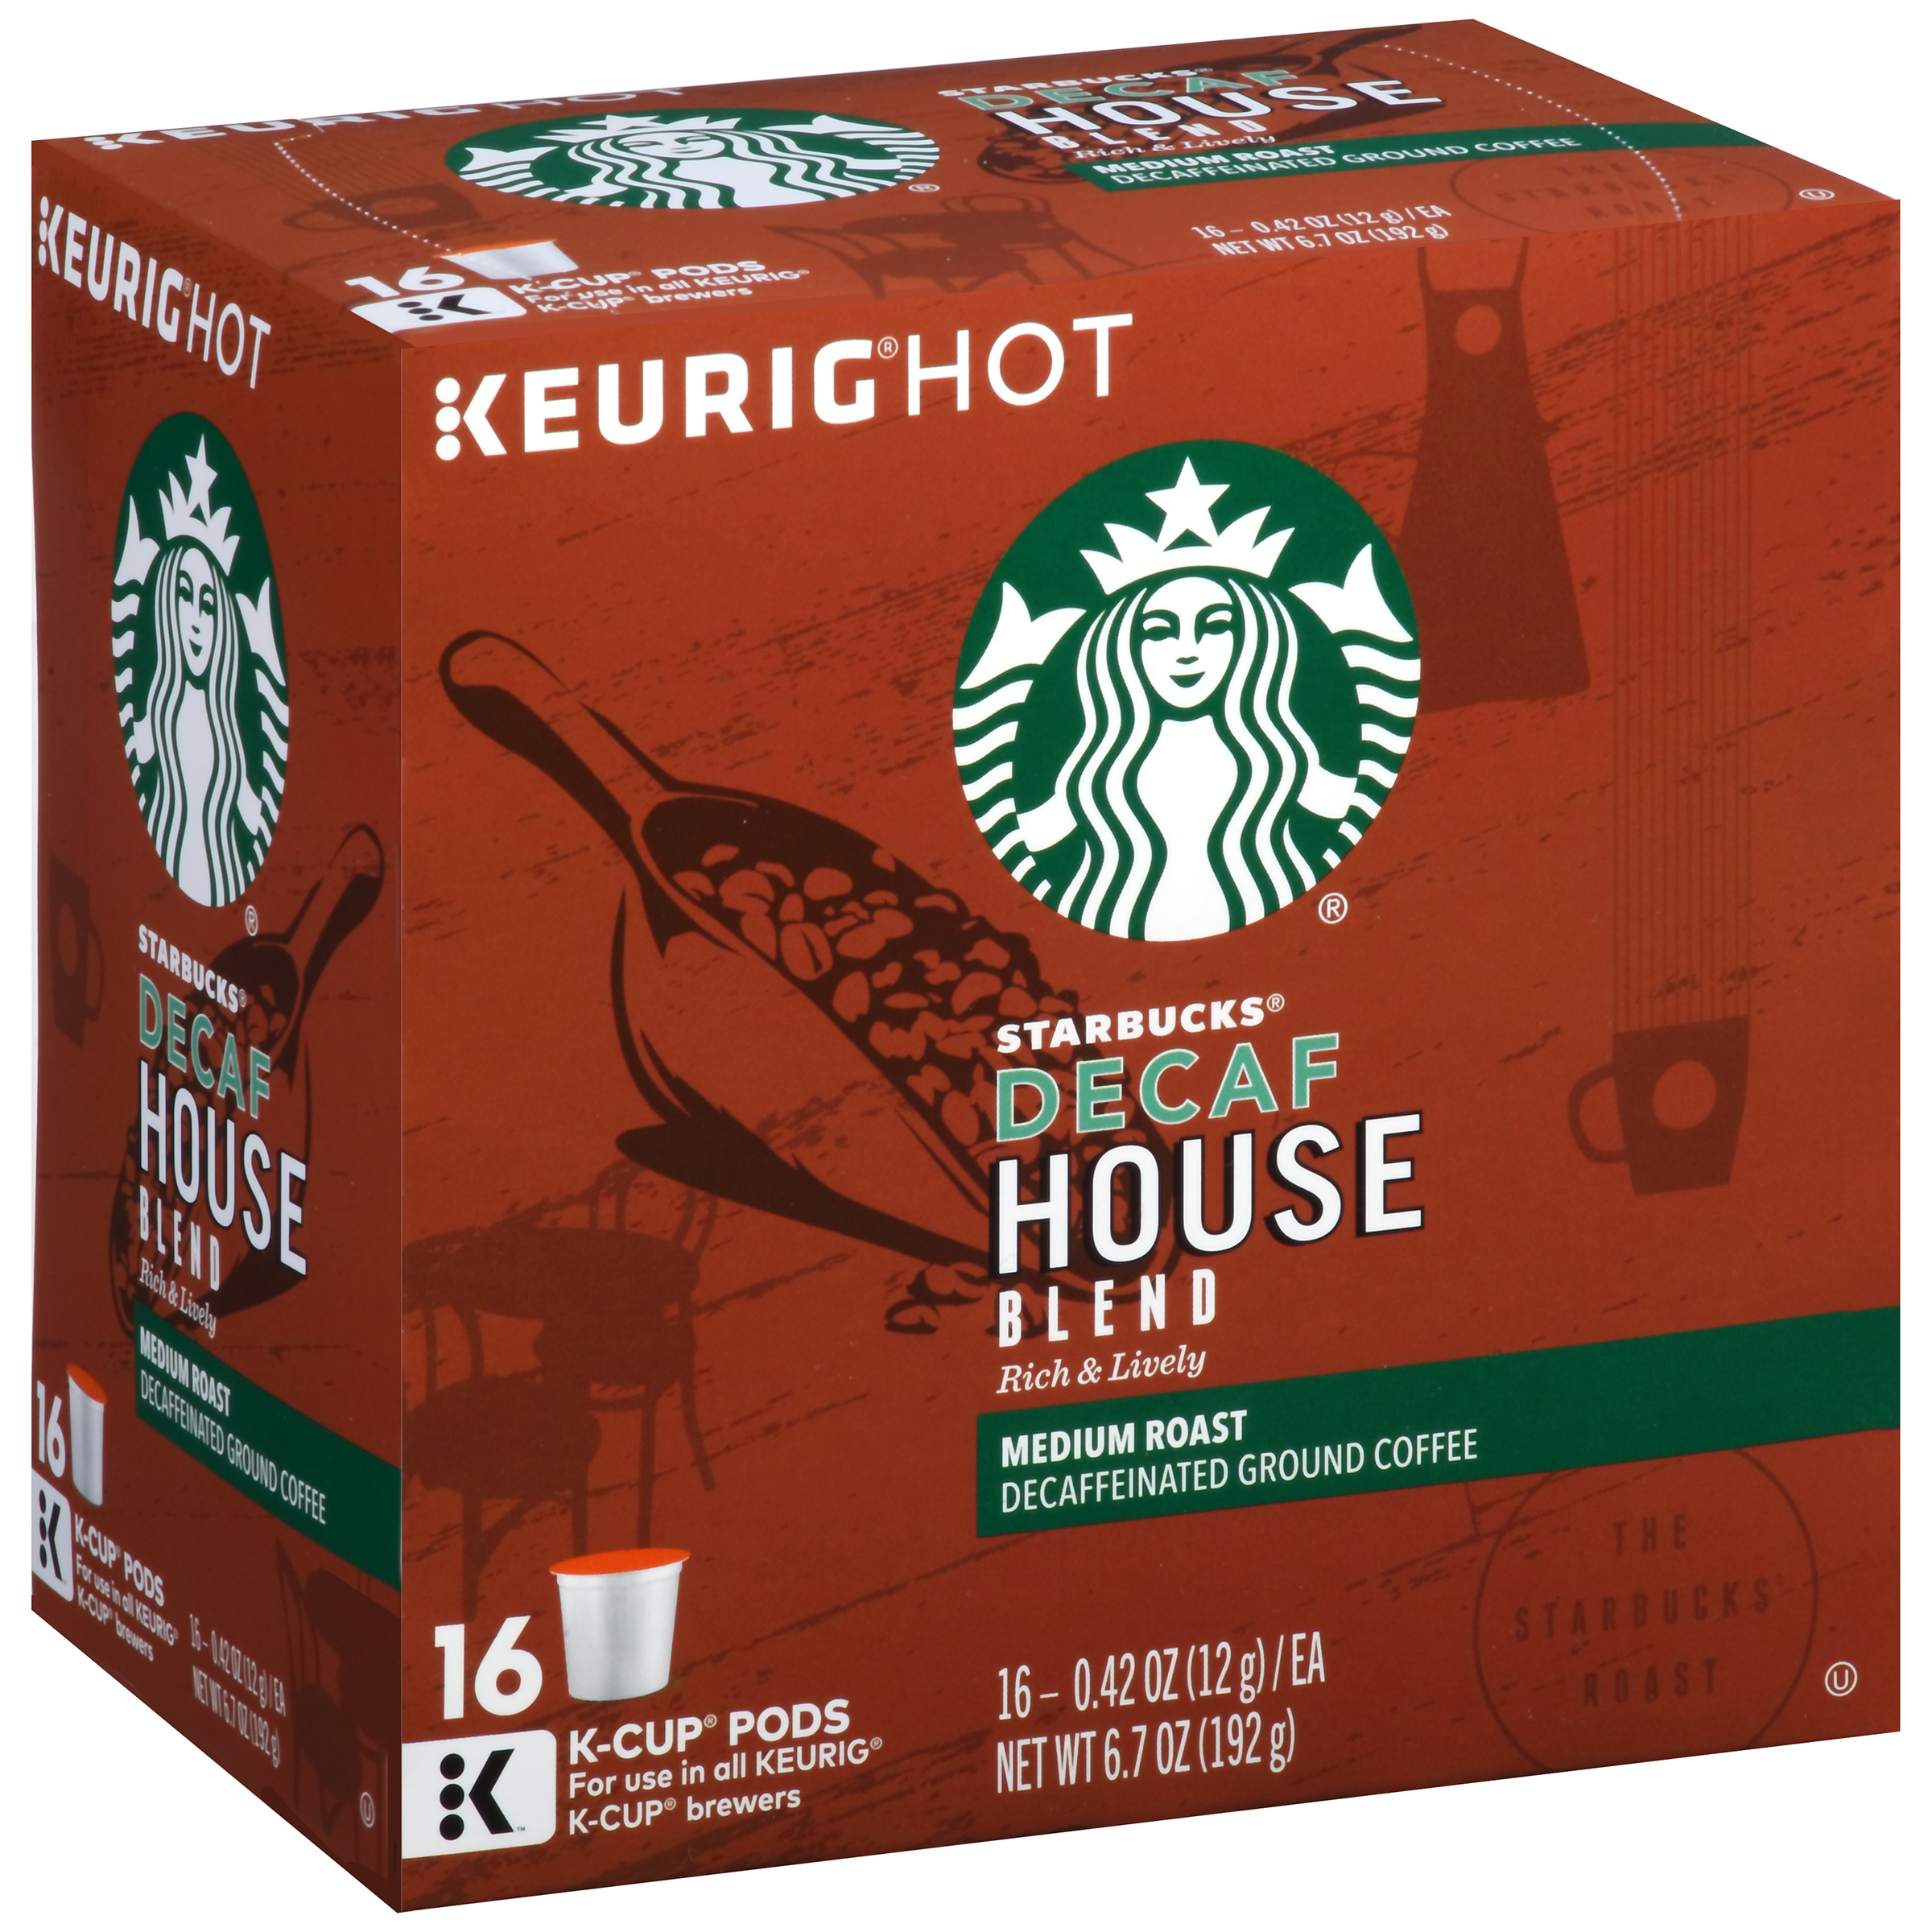 Starbucks Decaf House Blend Medium Ground Coffee K-Cup Pods 16 ct Box by STARBUCKS COFFEE COMPANY